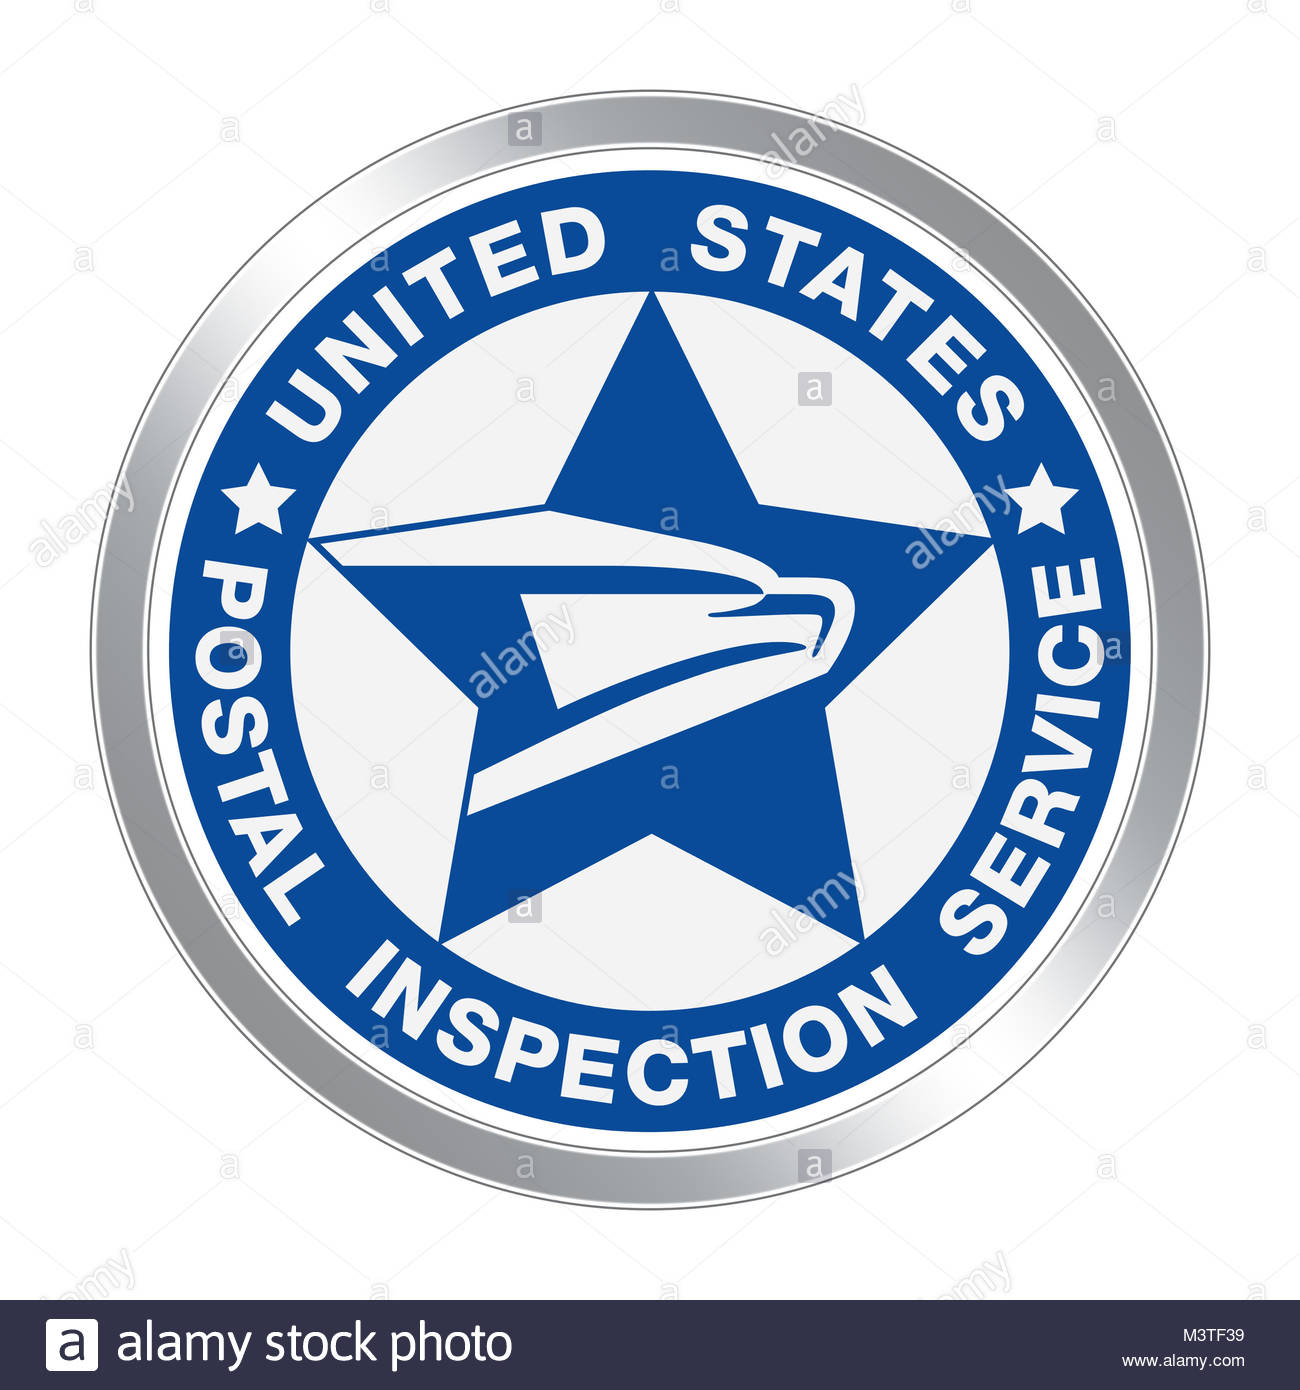 United States Postal Inspection Service USPIS icon logo button - Stock Image